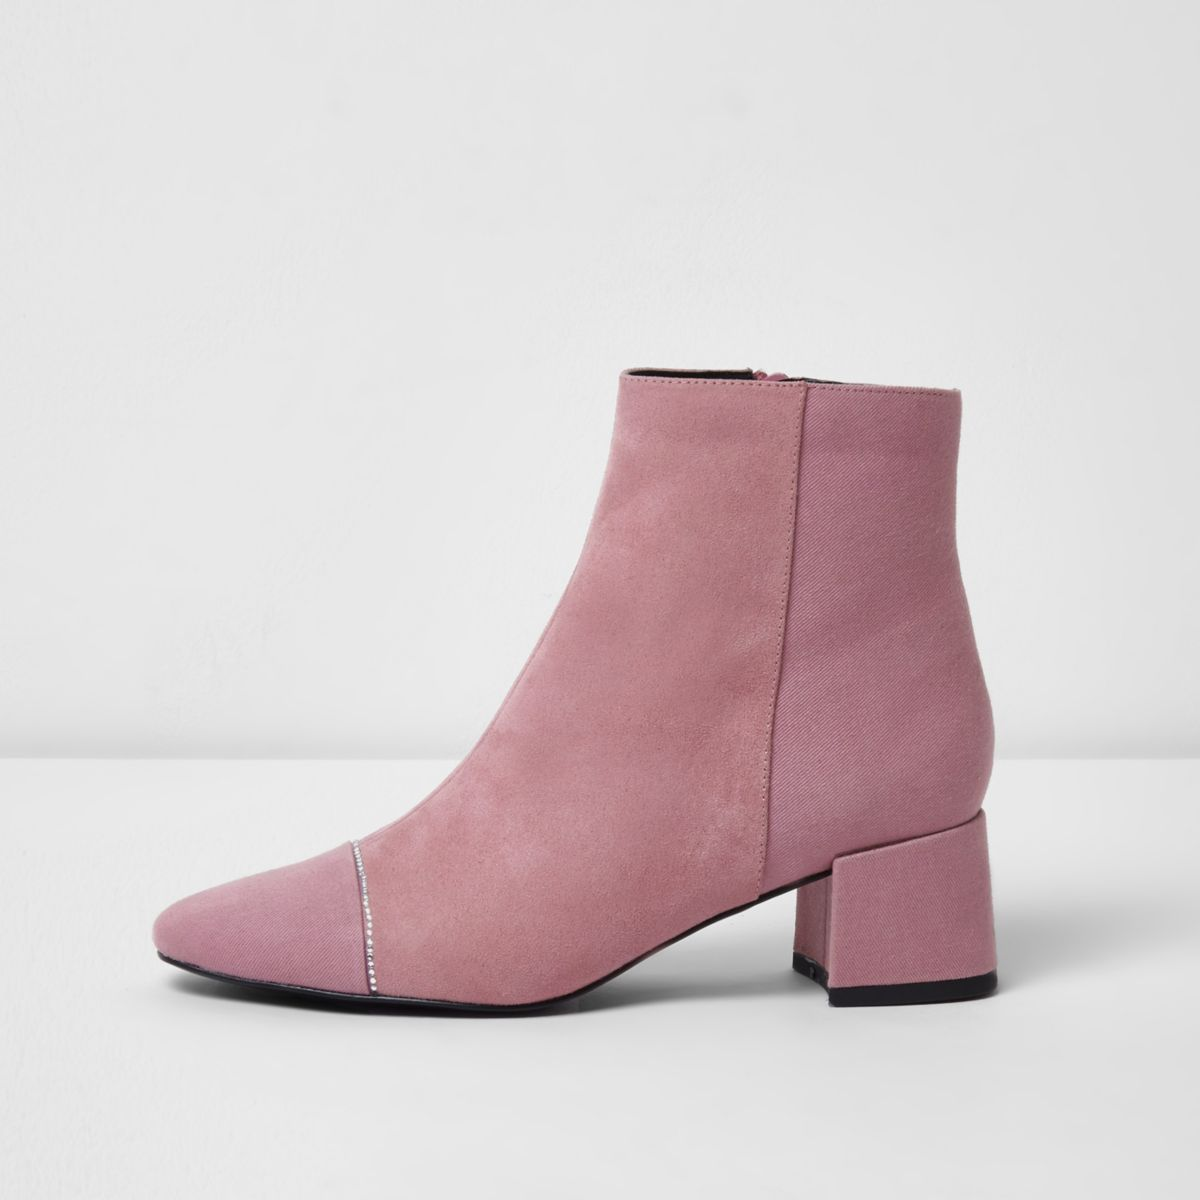 These stylish chunky heel ankle booties include Shop Ankle Boots online for Women cheap discount prices, get sexy pink ankle boots from Pink Basis and get free shipping on orders over $ Looking for cheap flat ankle boots look no further, find cheap flat ankle boots at Pink .